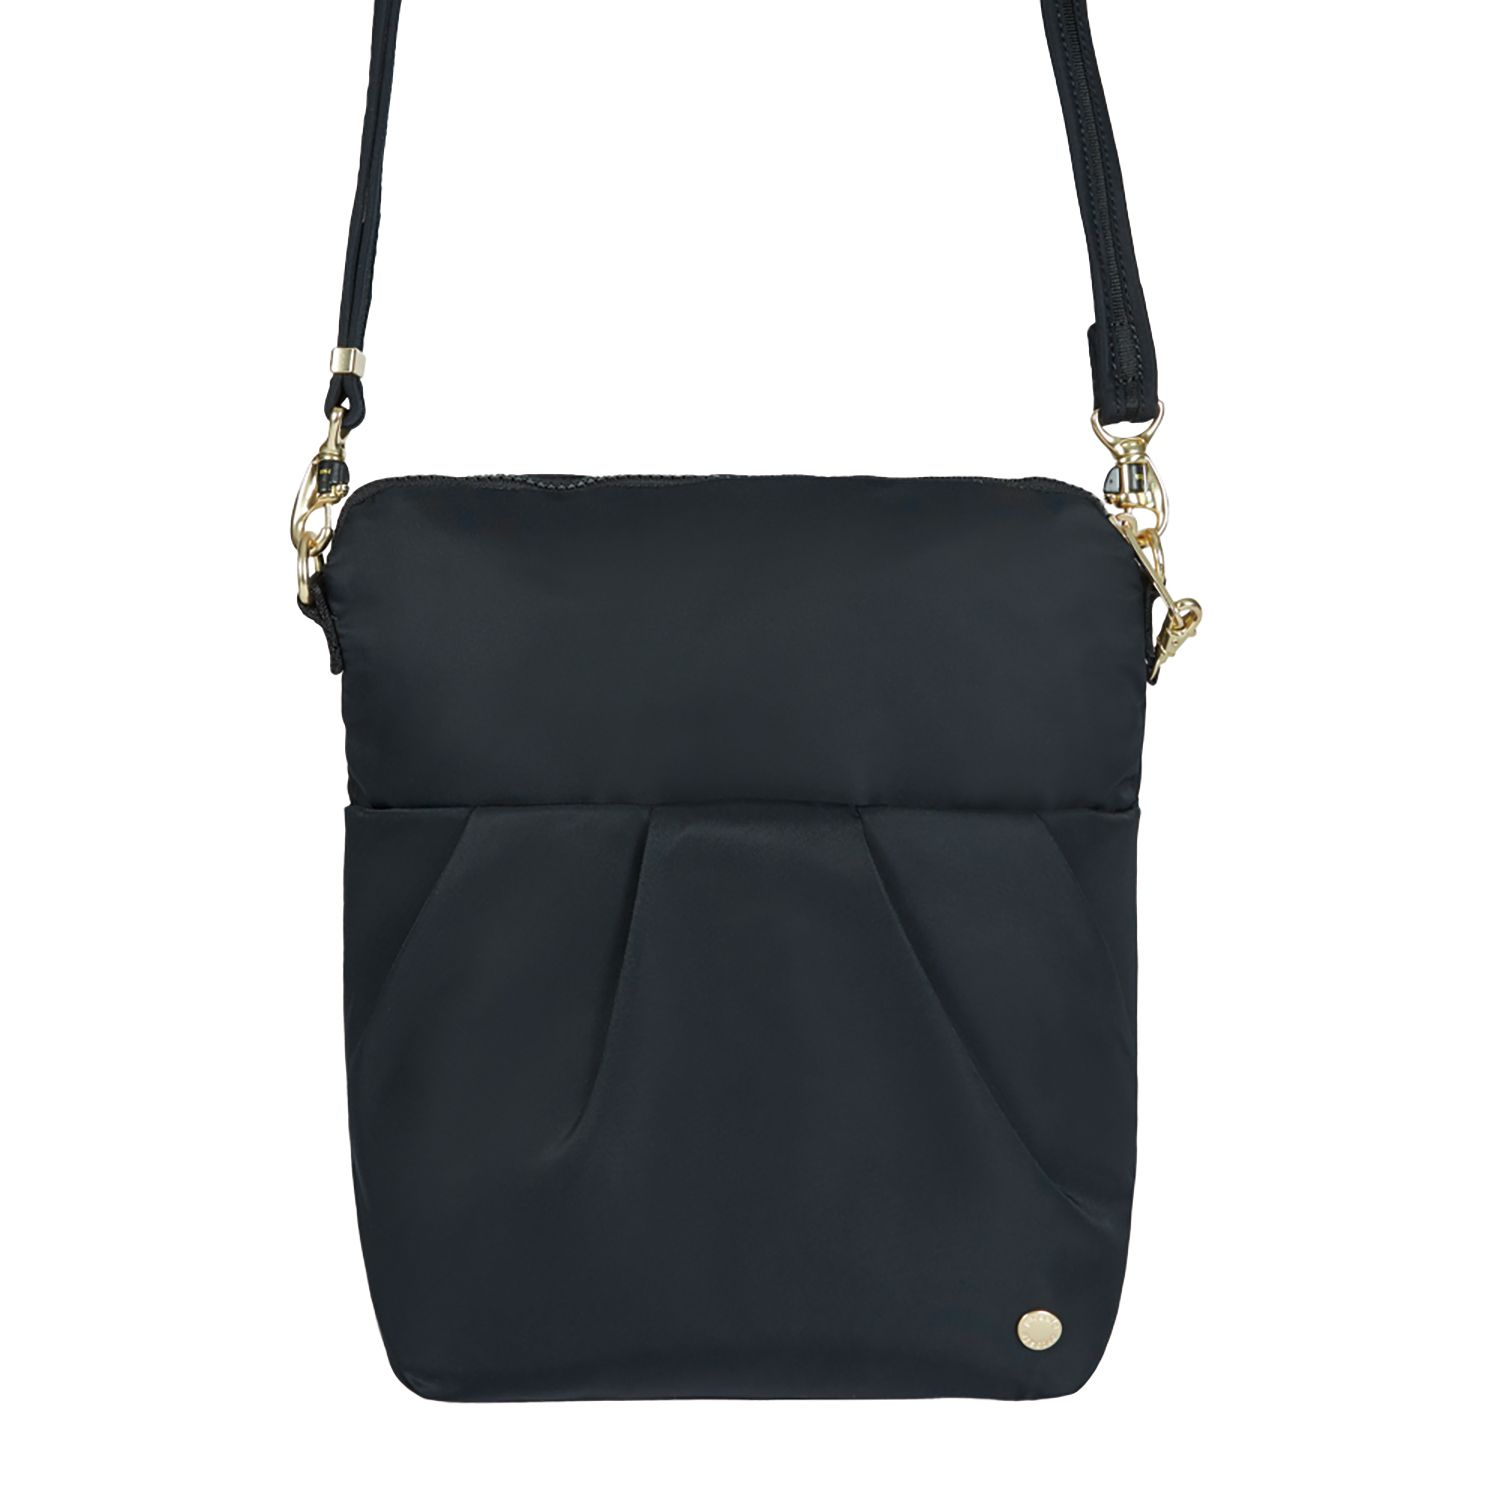 b922f862c497 Citysafe CX anti-theft convertible crossbody | Oh the places we'll ...